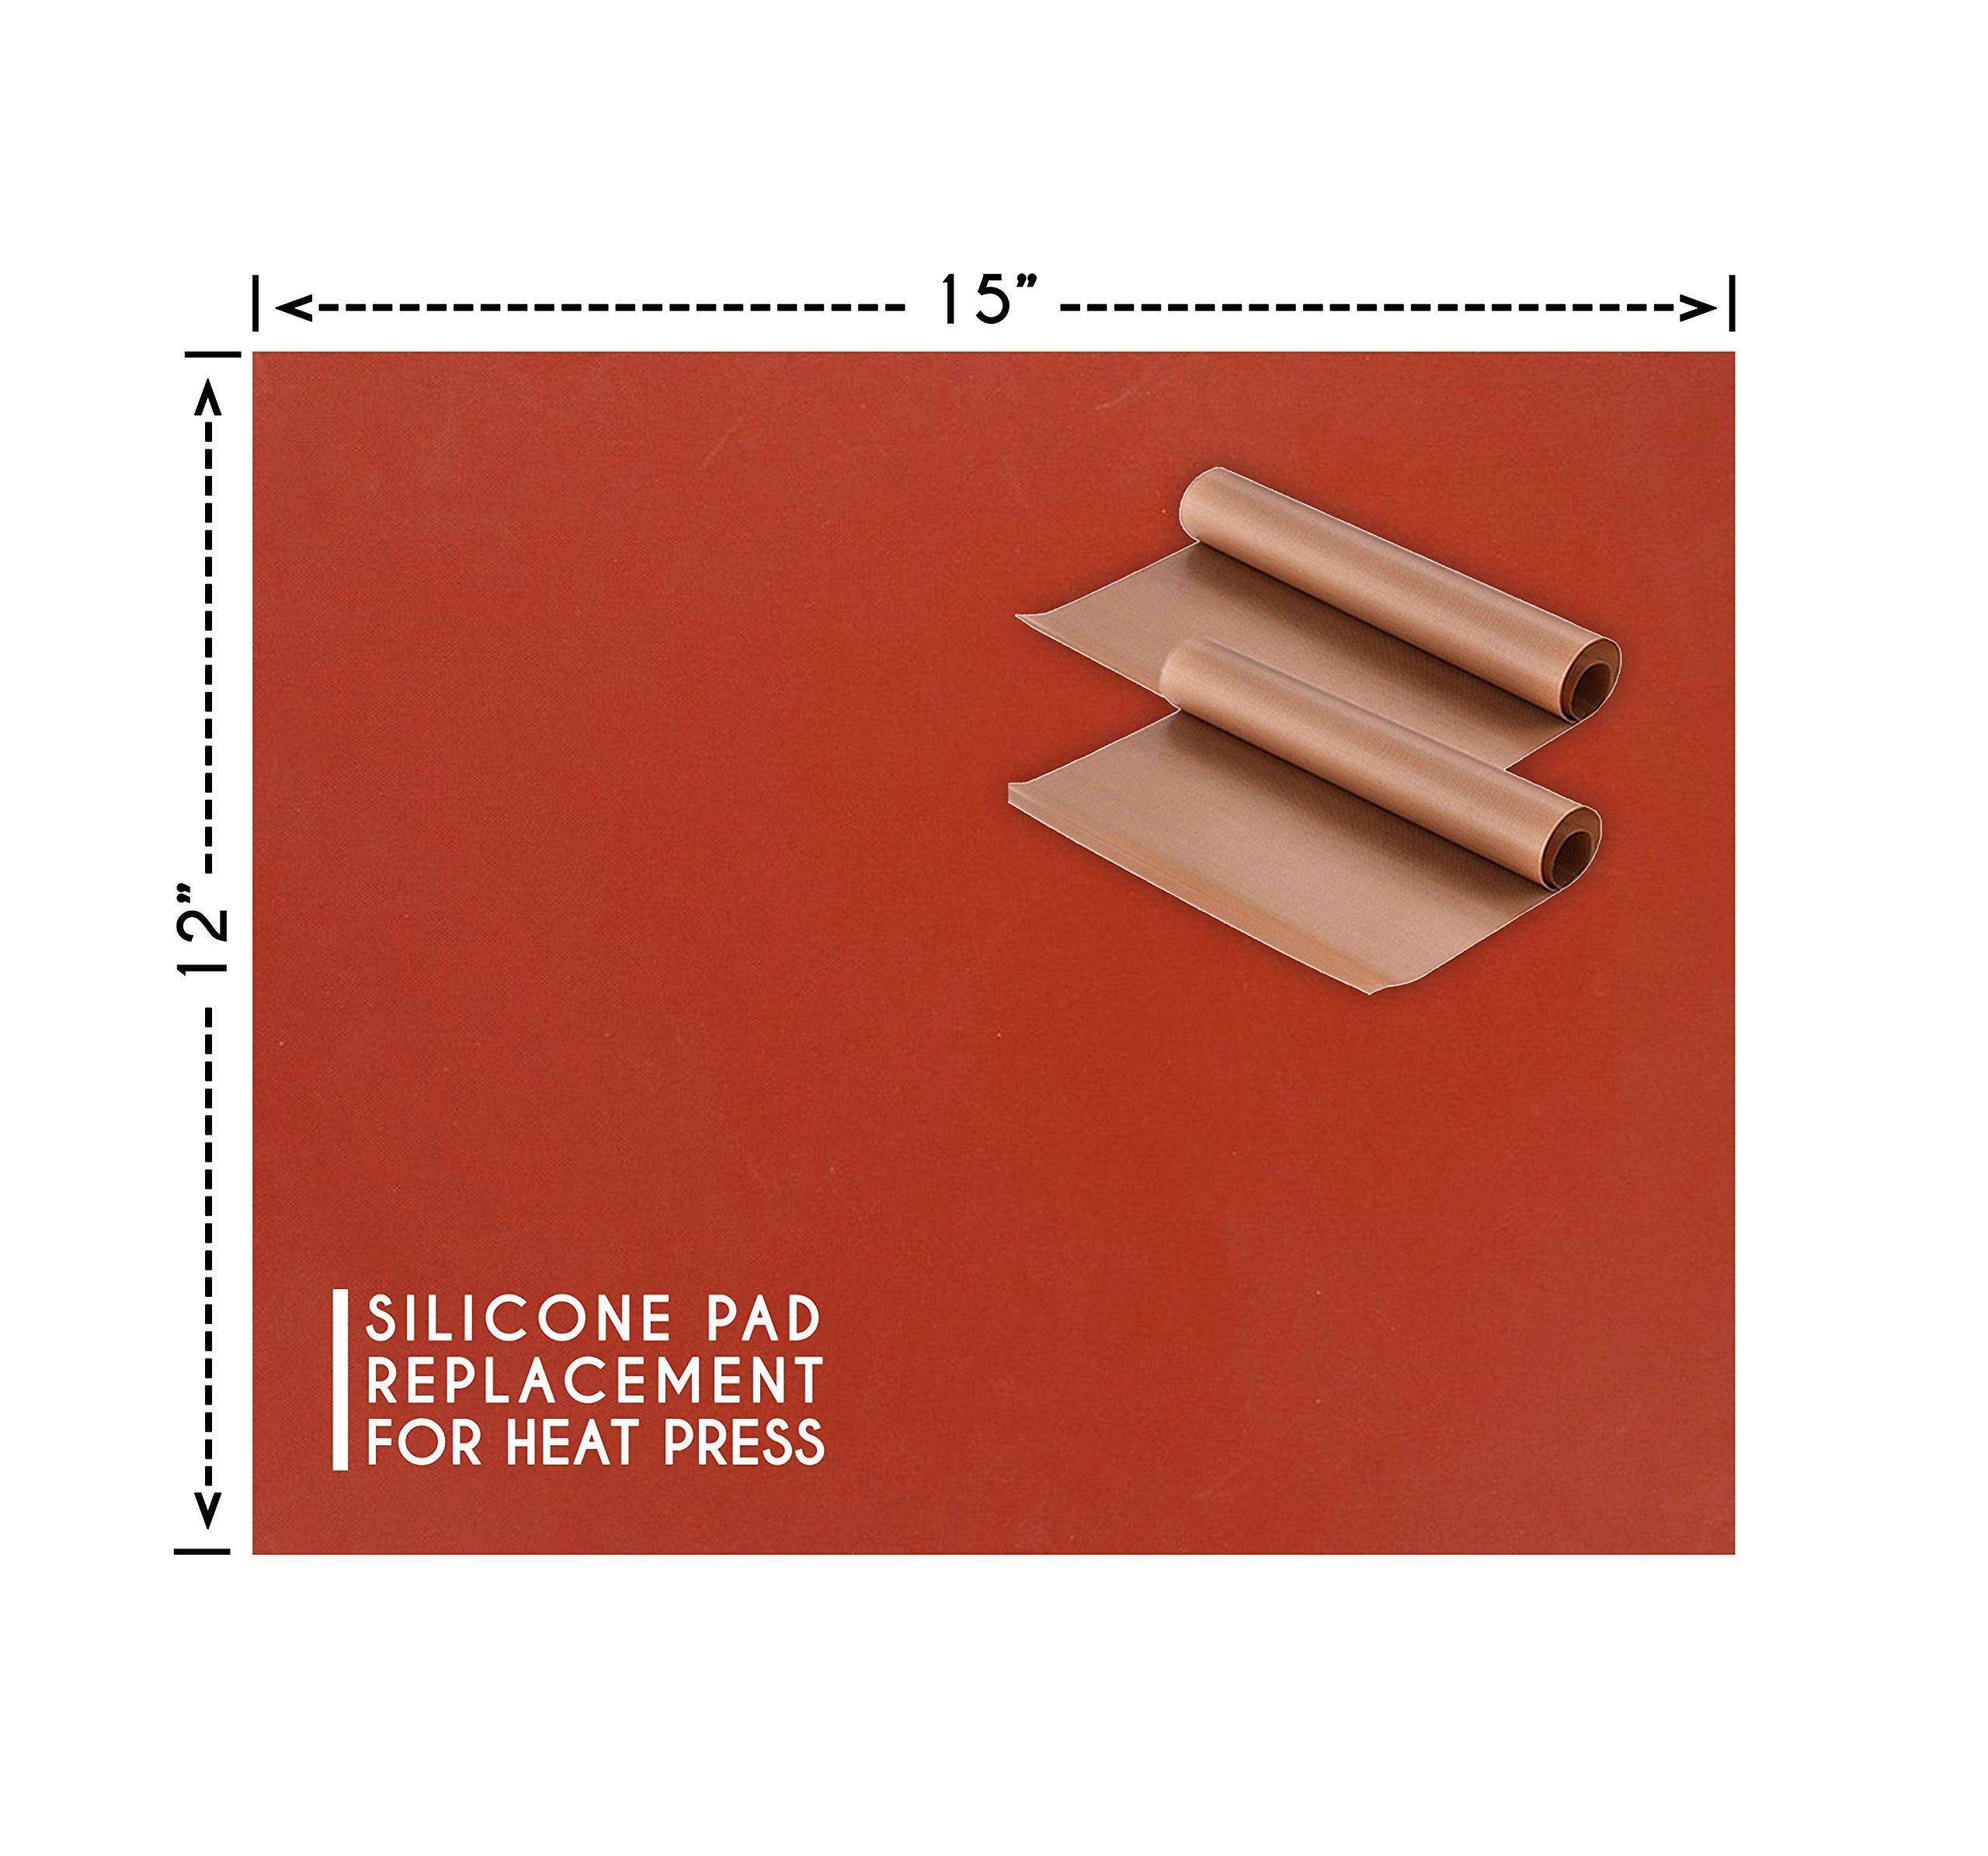 Silicone Pad for Heat Press Replacement - 12 X 15 Inches   Bonus - 2 Teflon Sheets by Akshaya